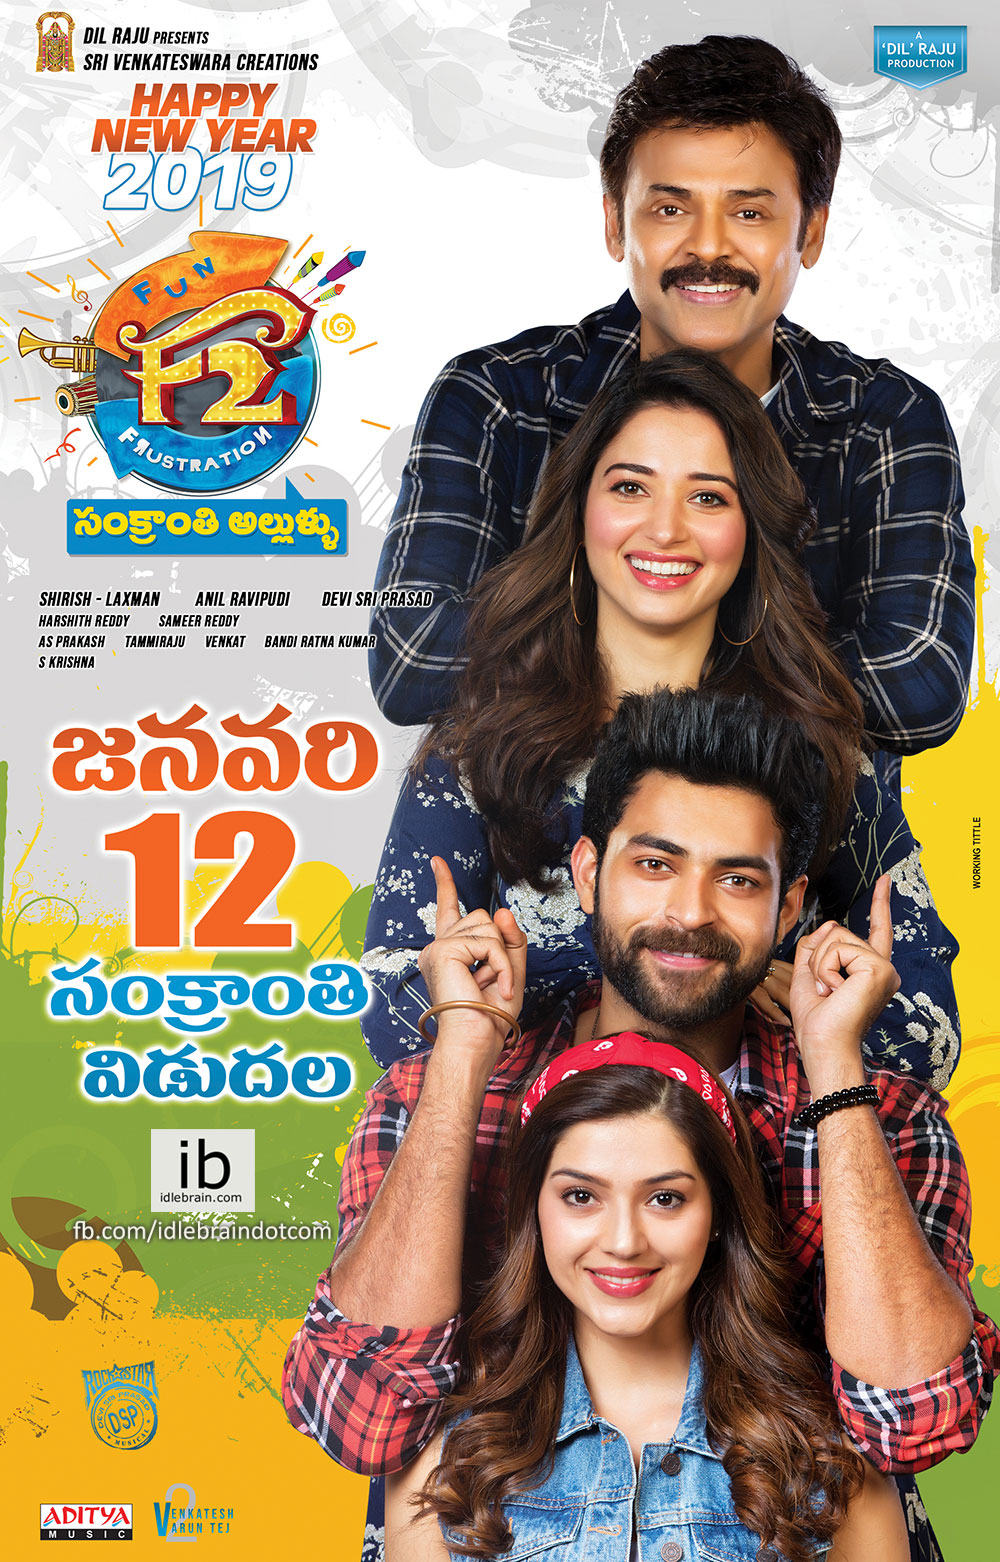 F2 Fun and Frustration 2019 Hindi Dubbed 720p HDRip 1.3GB Free Download